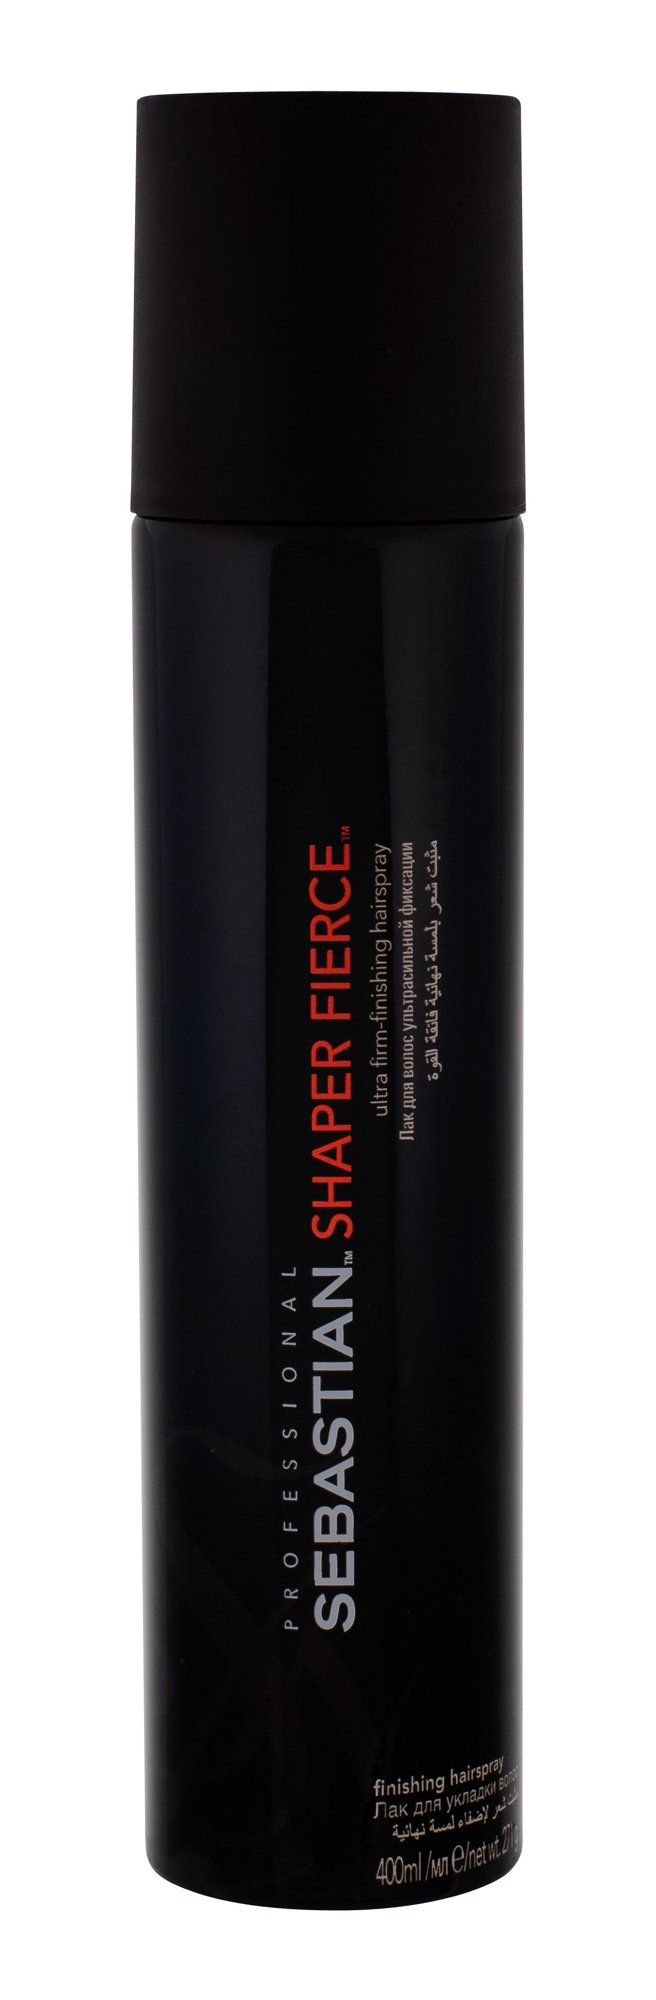 Sebastian Professional Shaper Fierce Hair Spray 400ml